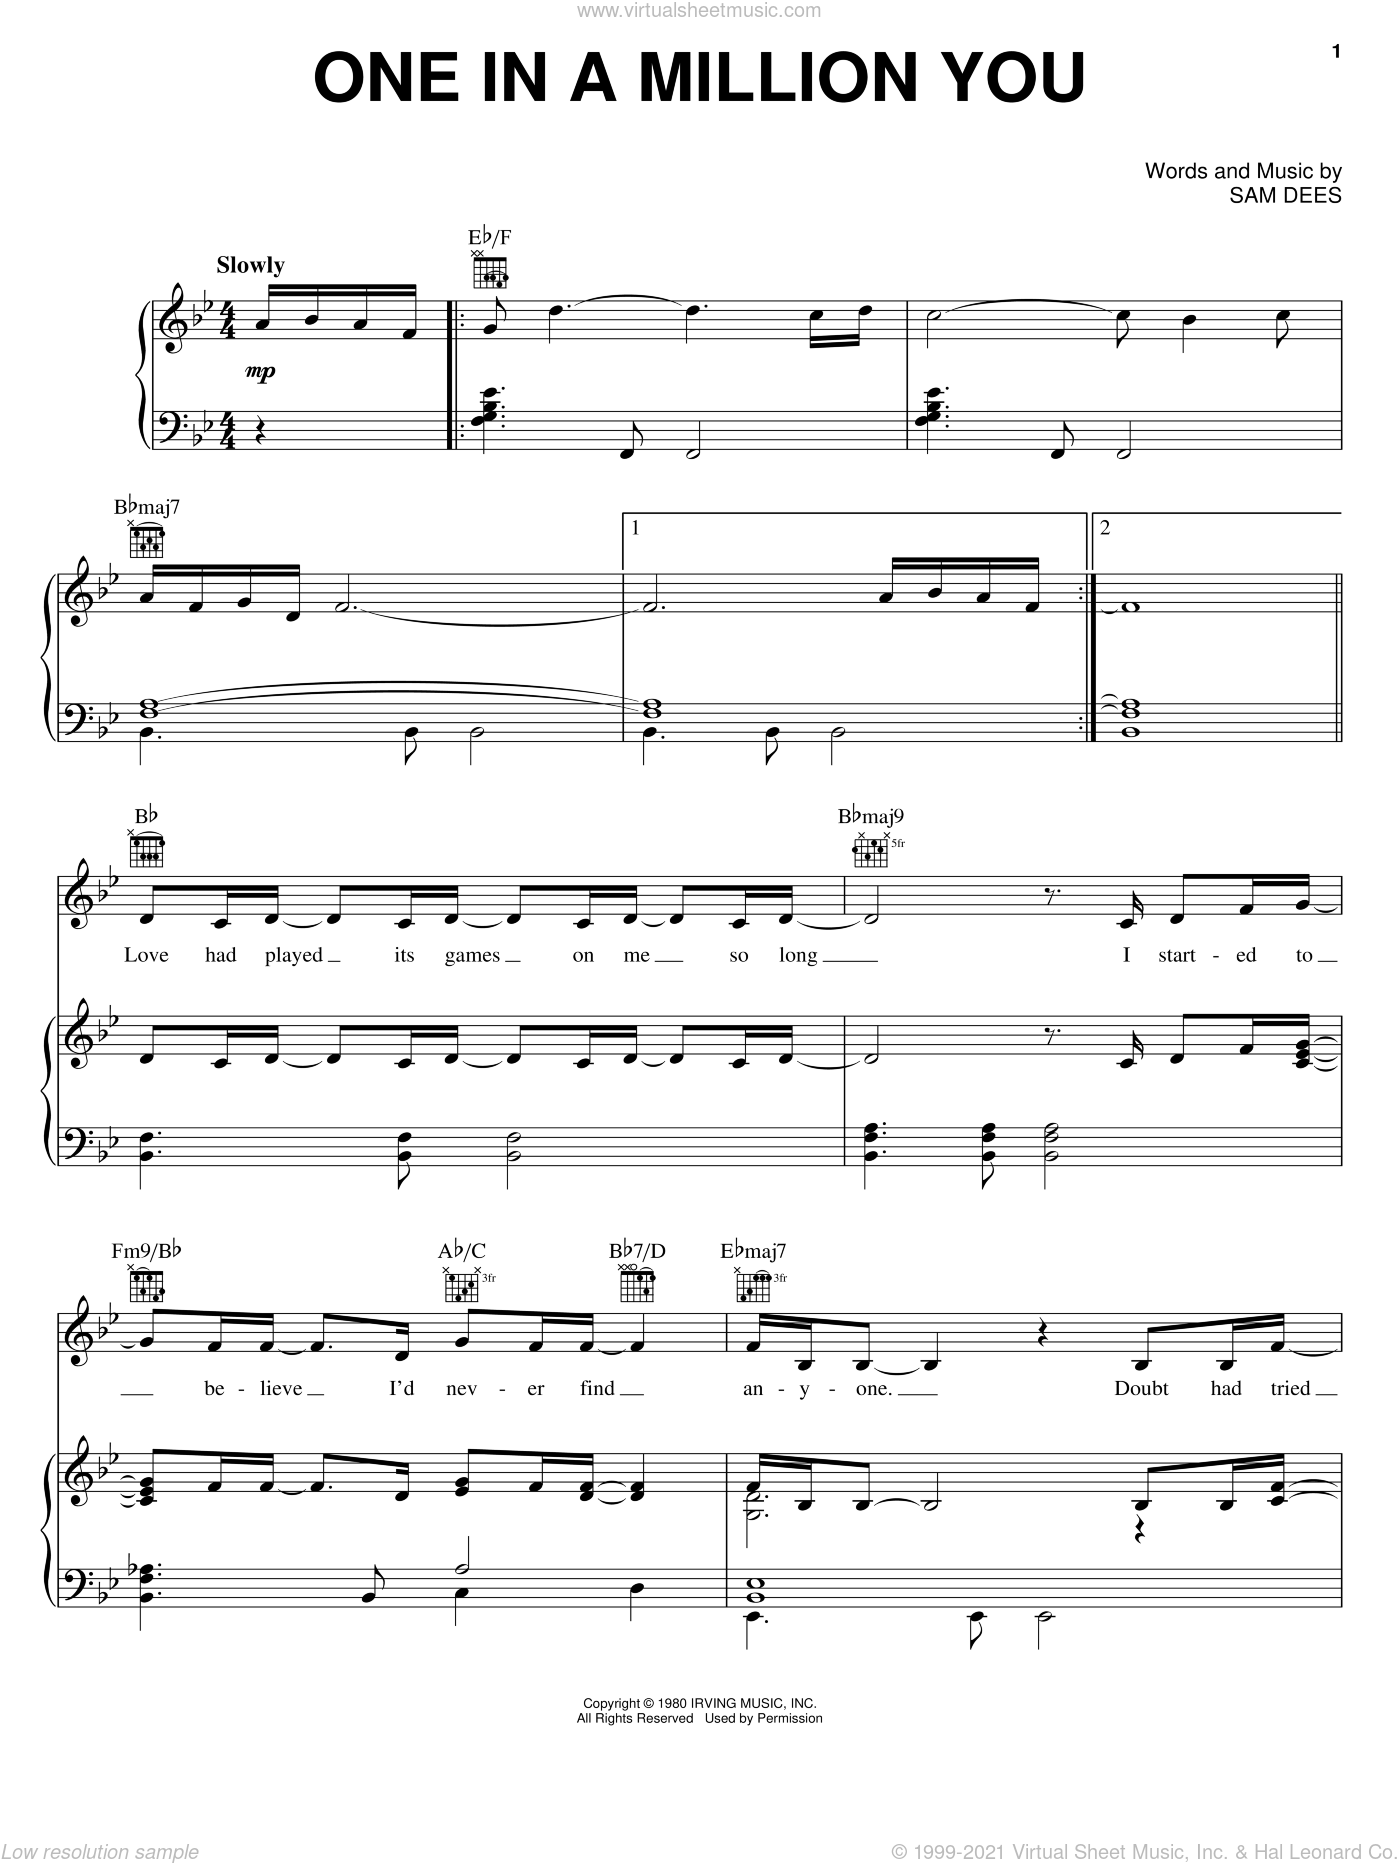 One In A Million You sheet music for voice, piano or guitar by Sam Dees